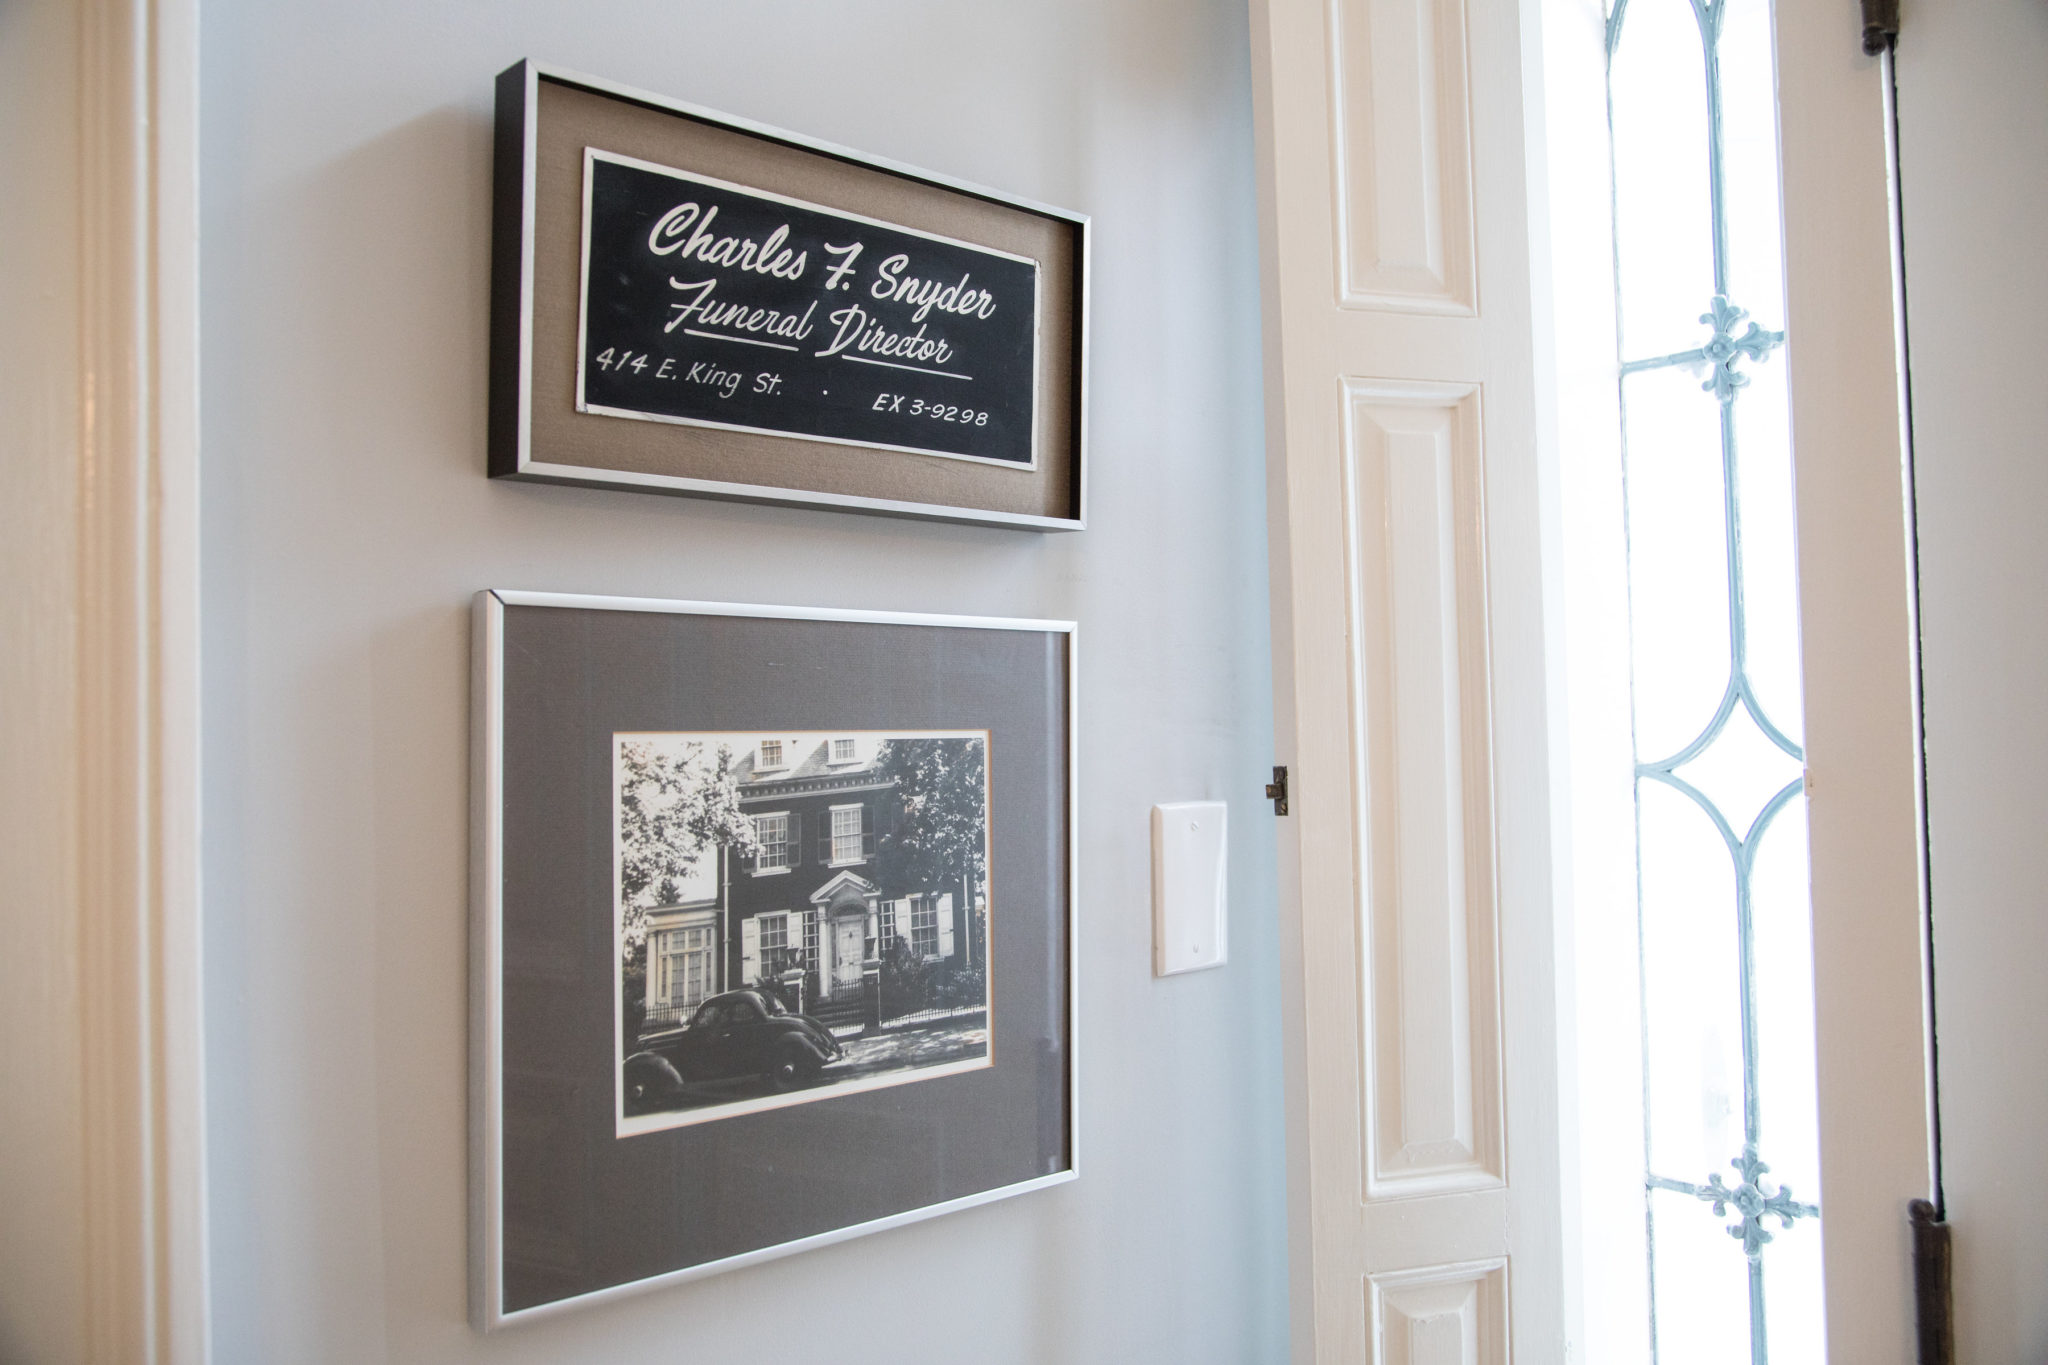 funeral home visit Chauvin funeral home provides complete funeral and cremation services to the local community.